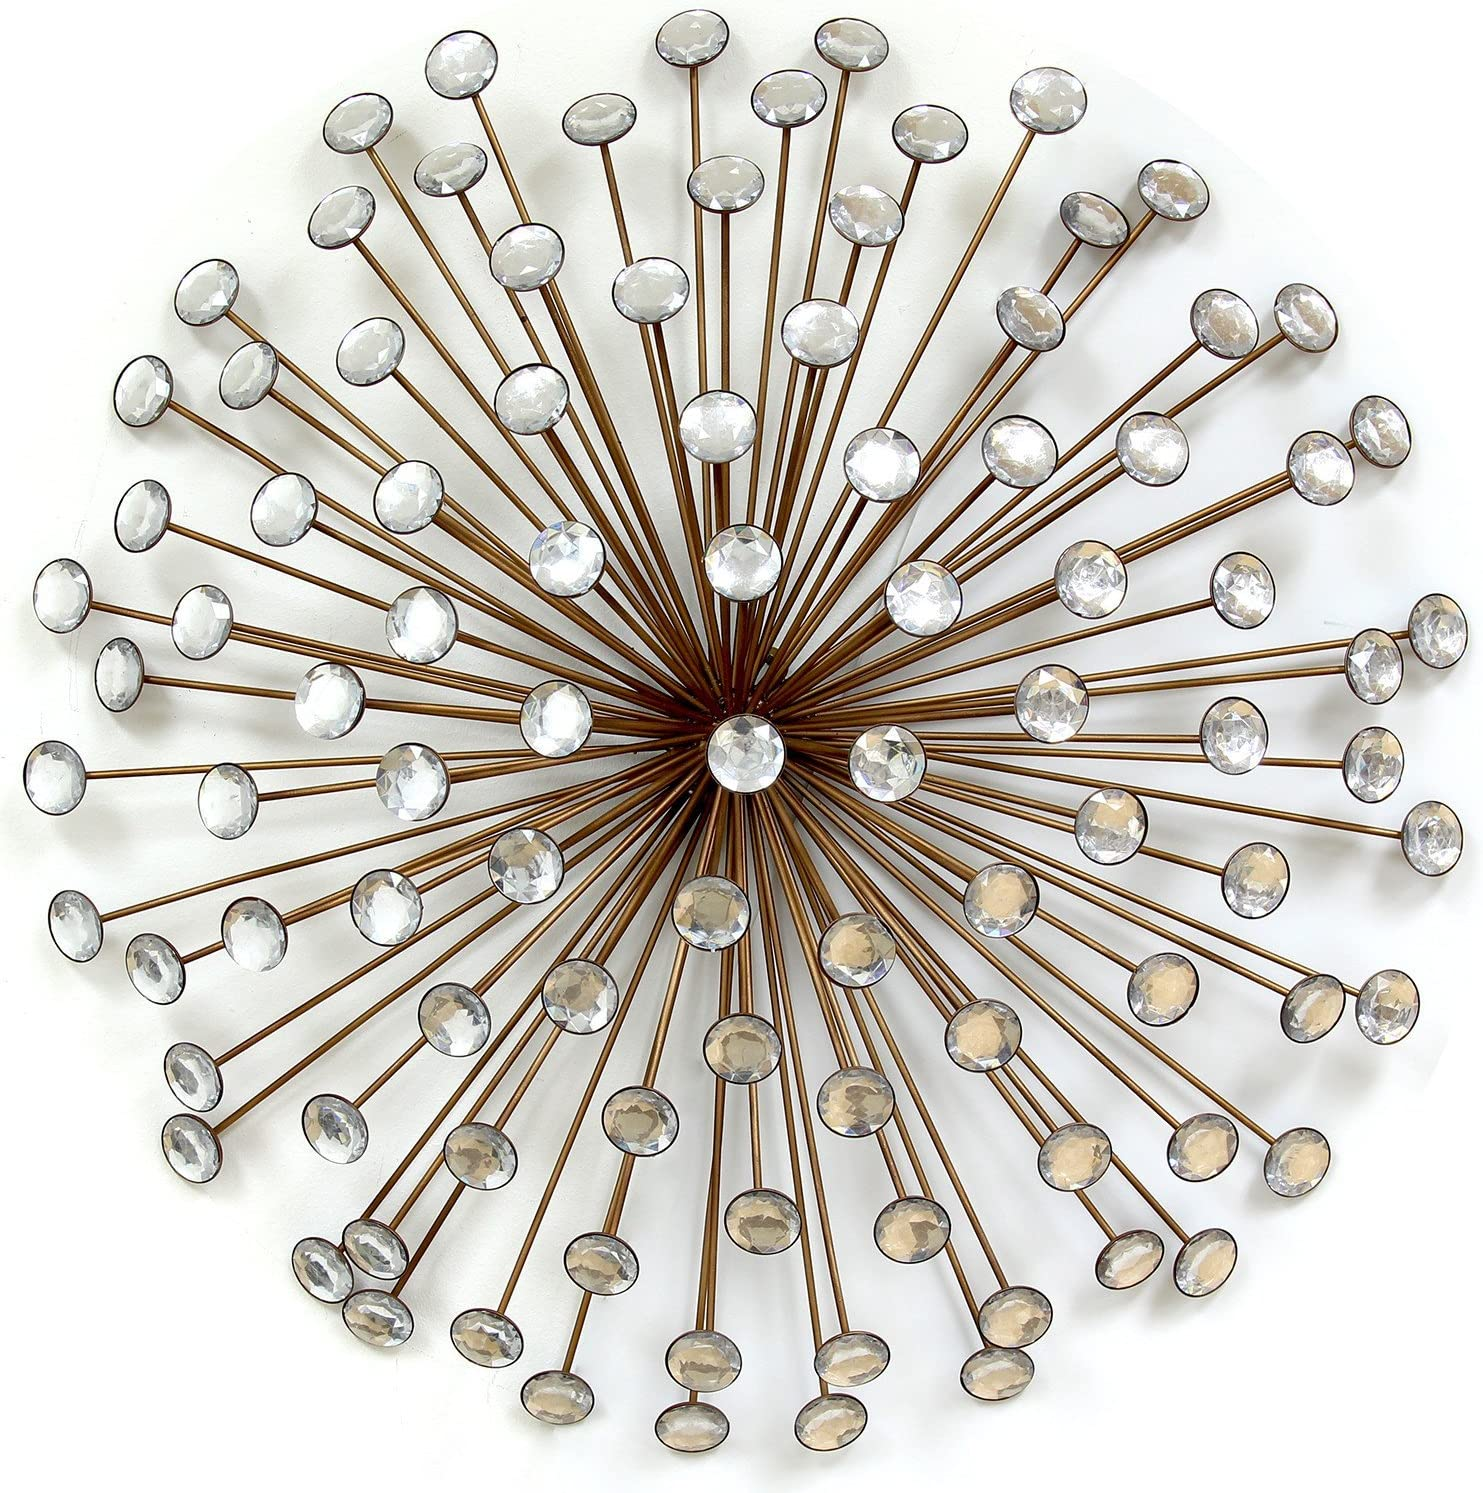 Stratton Home Decor SPC 986 Acrylic Burst Wall Decor, Bronze, 24.00 W X 1.50 D X 24.00 H